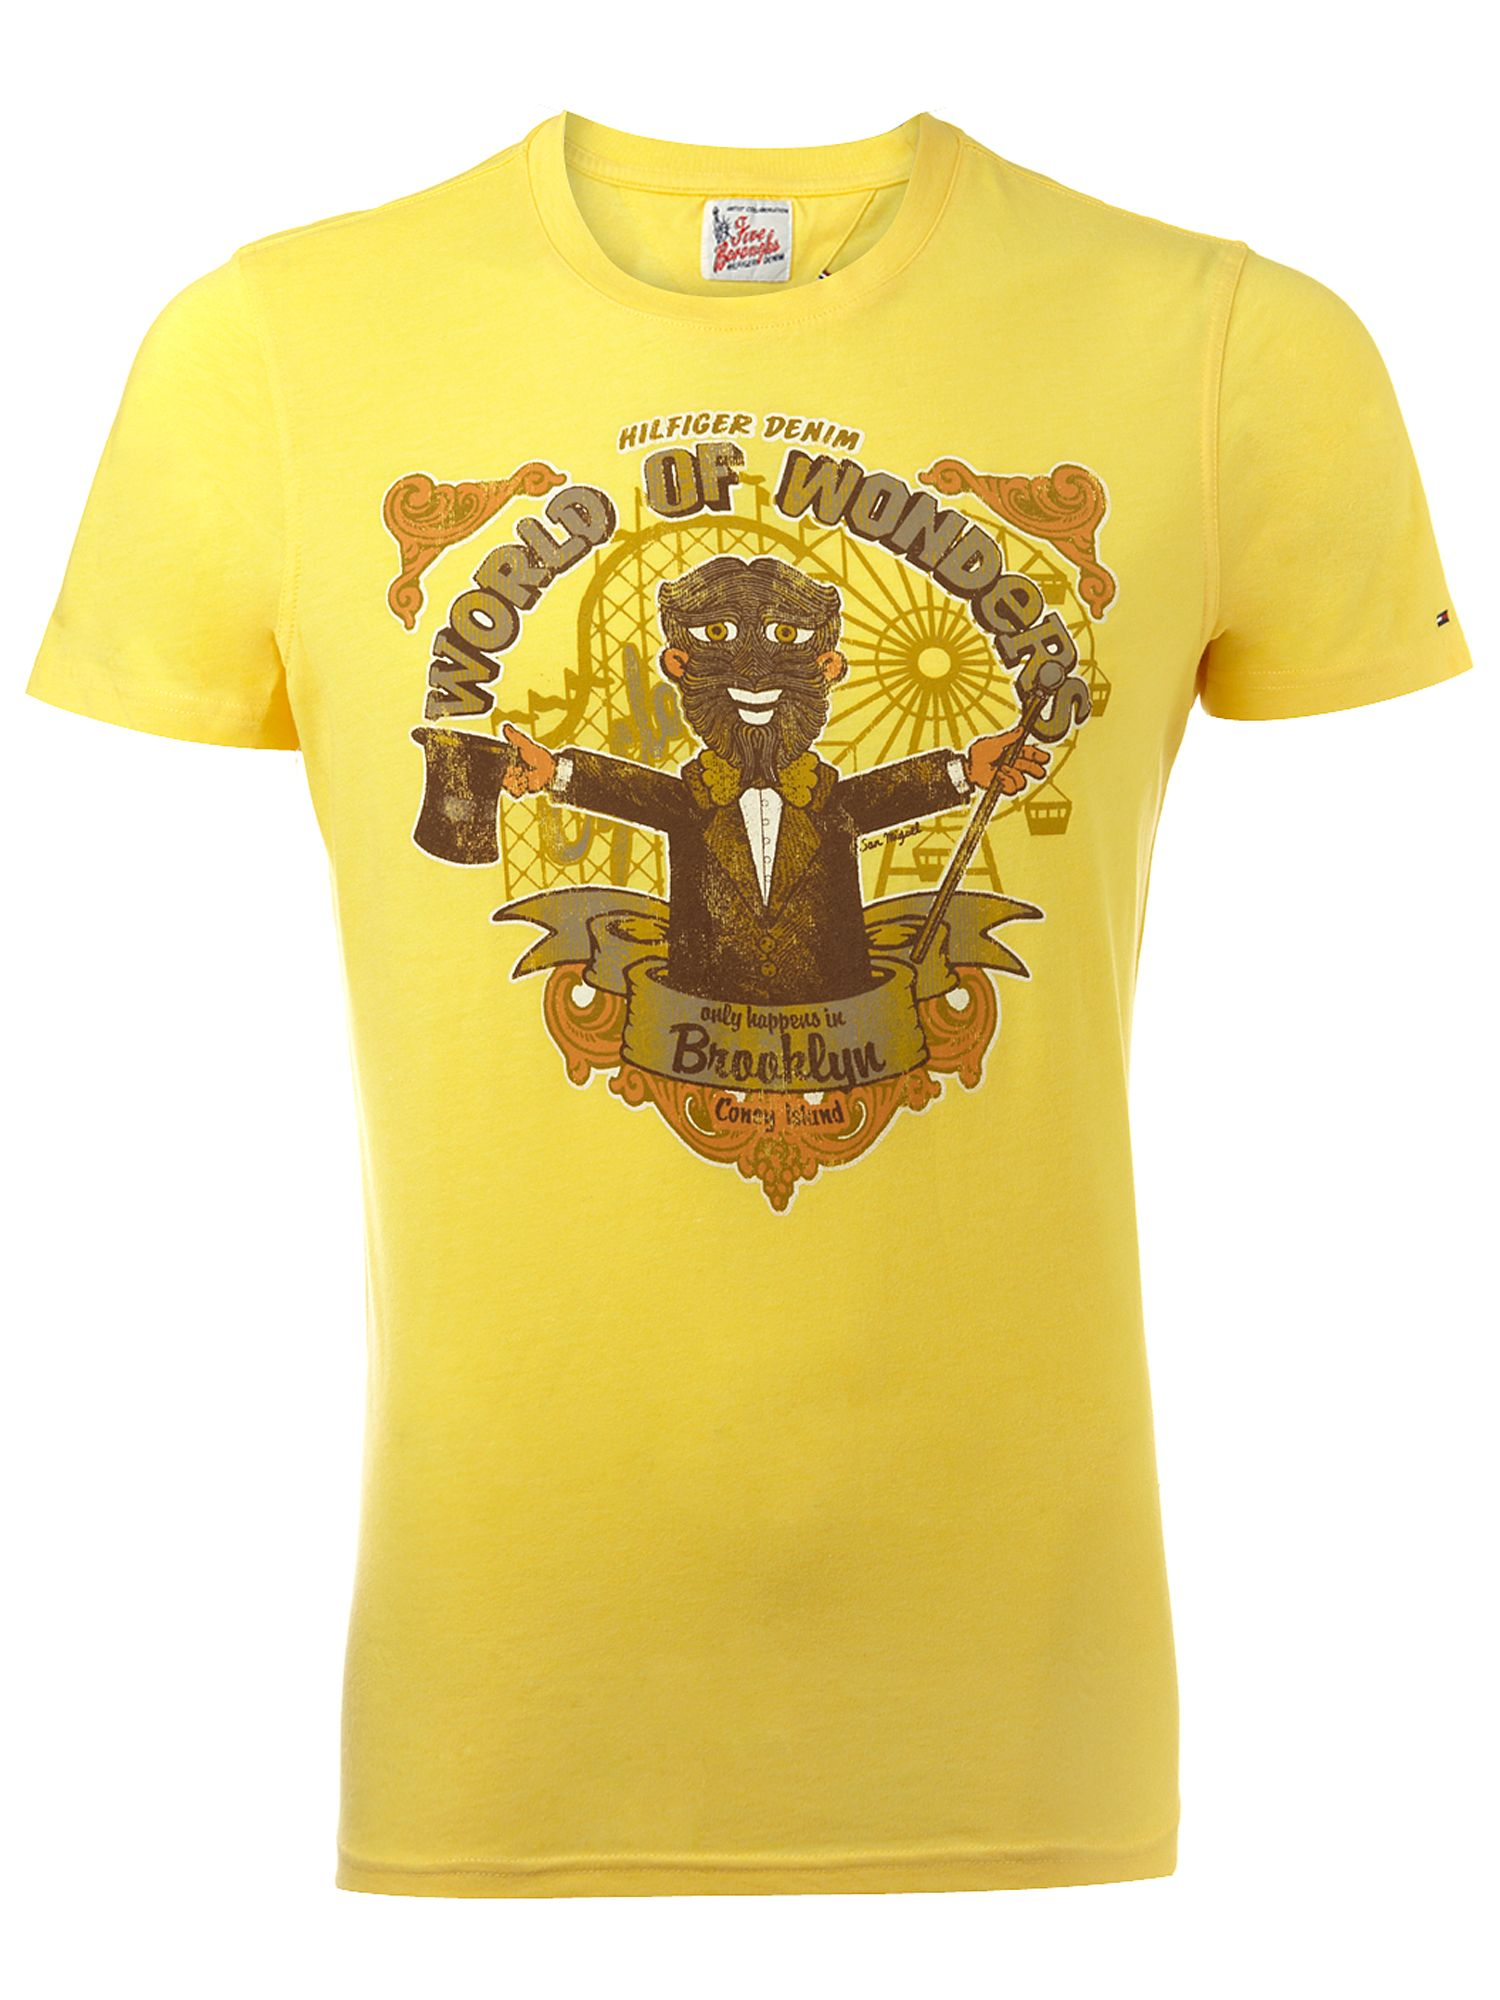 Tommy Hilfiger Brooklyn crew neck T-shirt Yellow product image